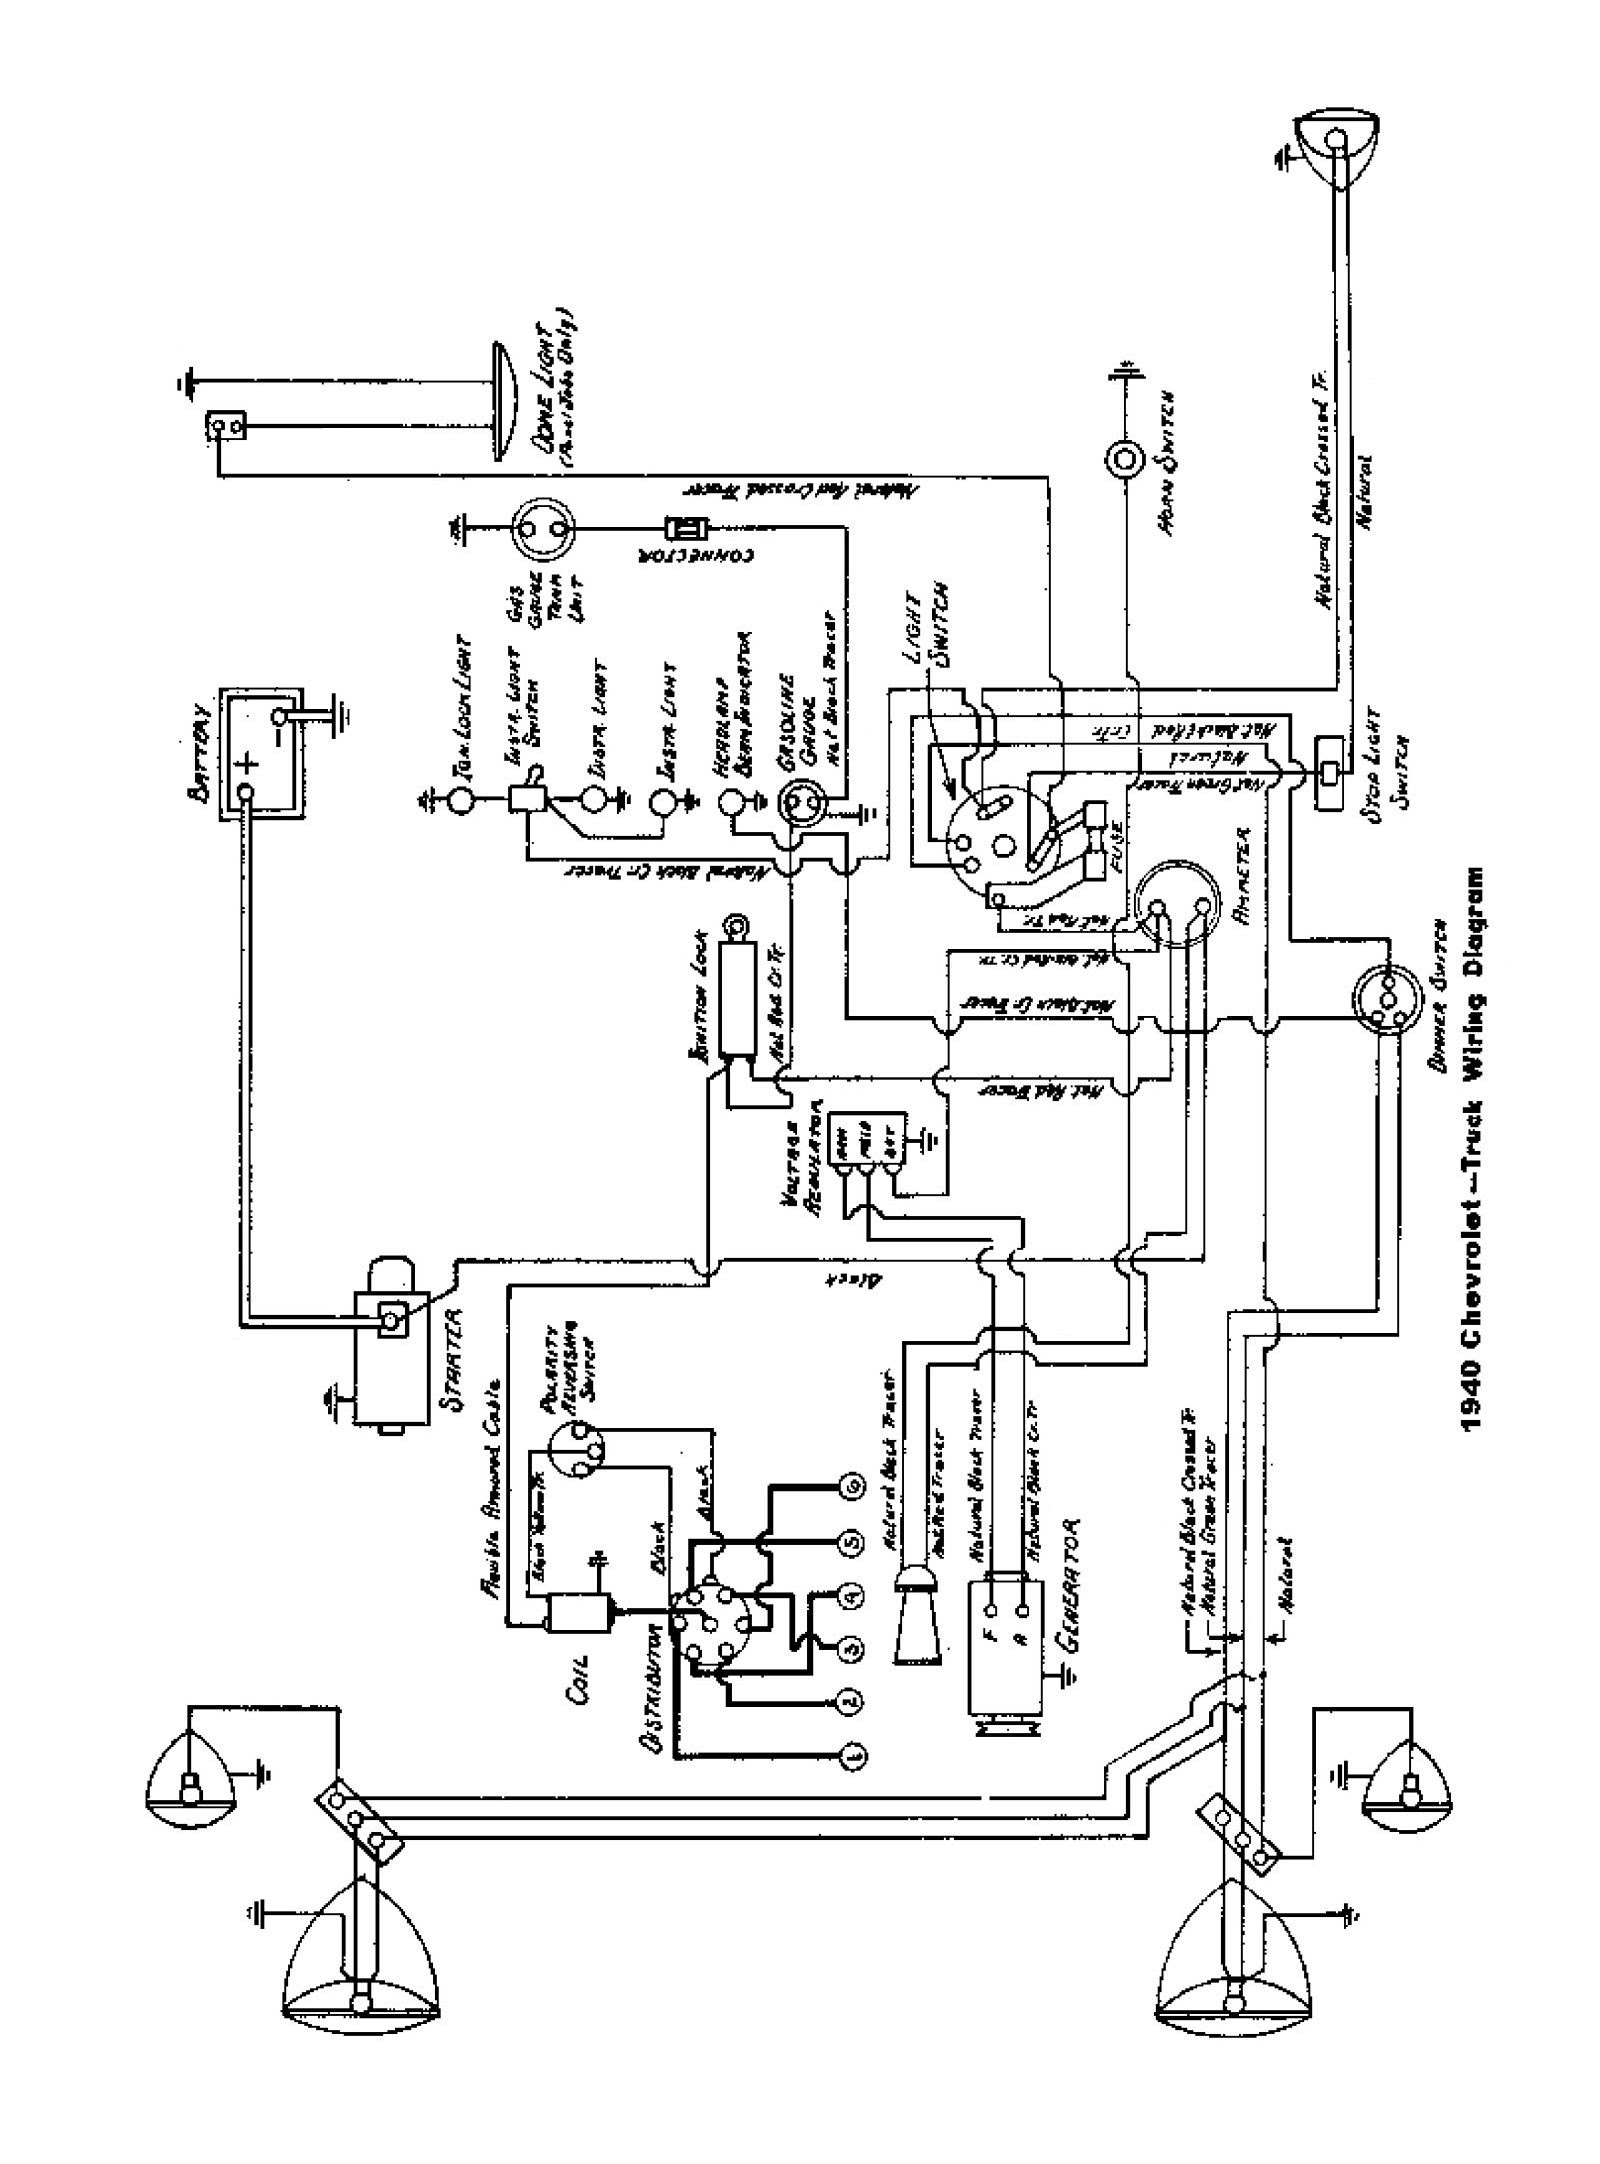 1953 Chevy Truck Wiring Schematics Wiring Diagram View A View A Zaafran It